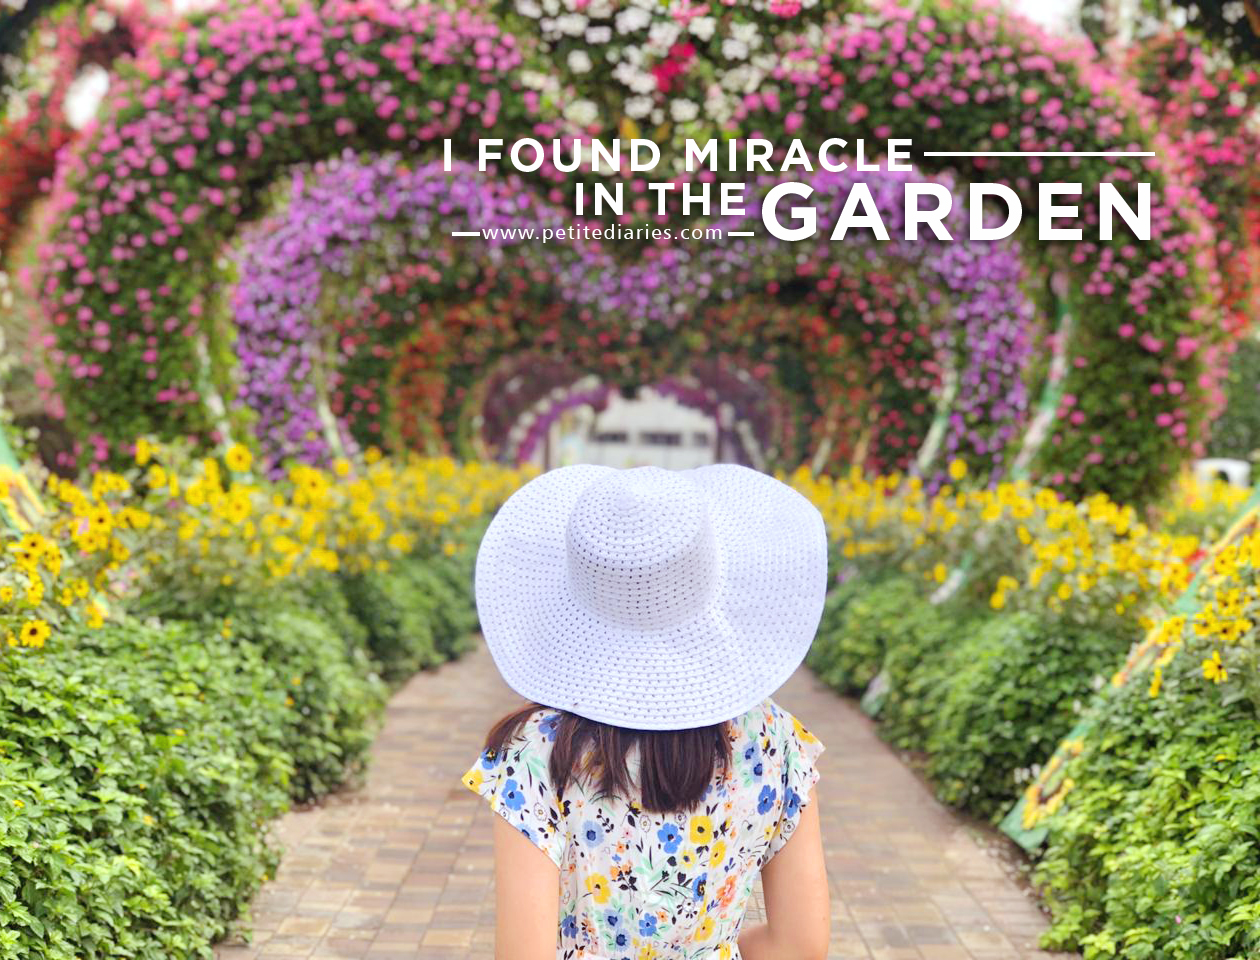 dubai trip miracle garden review